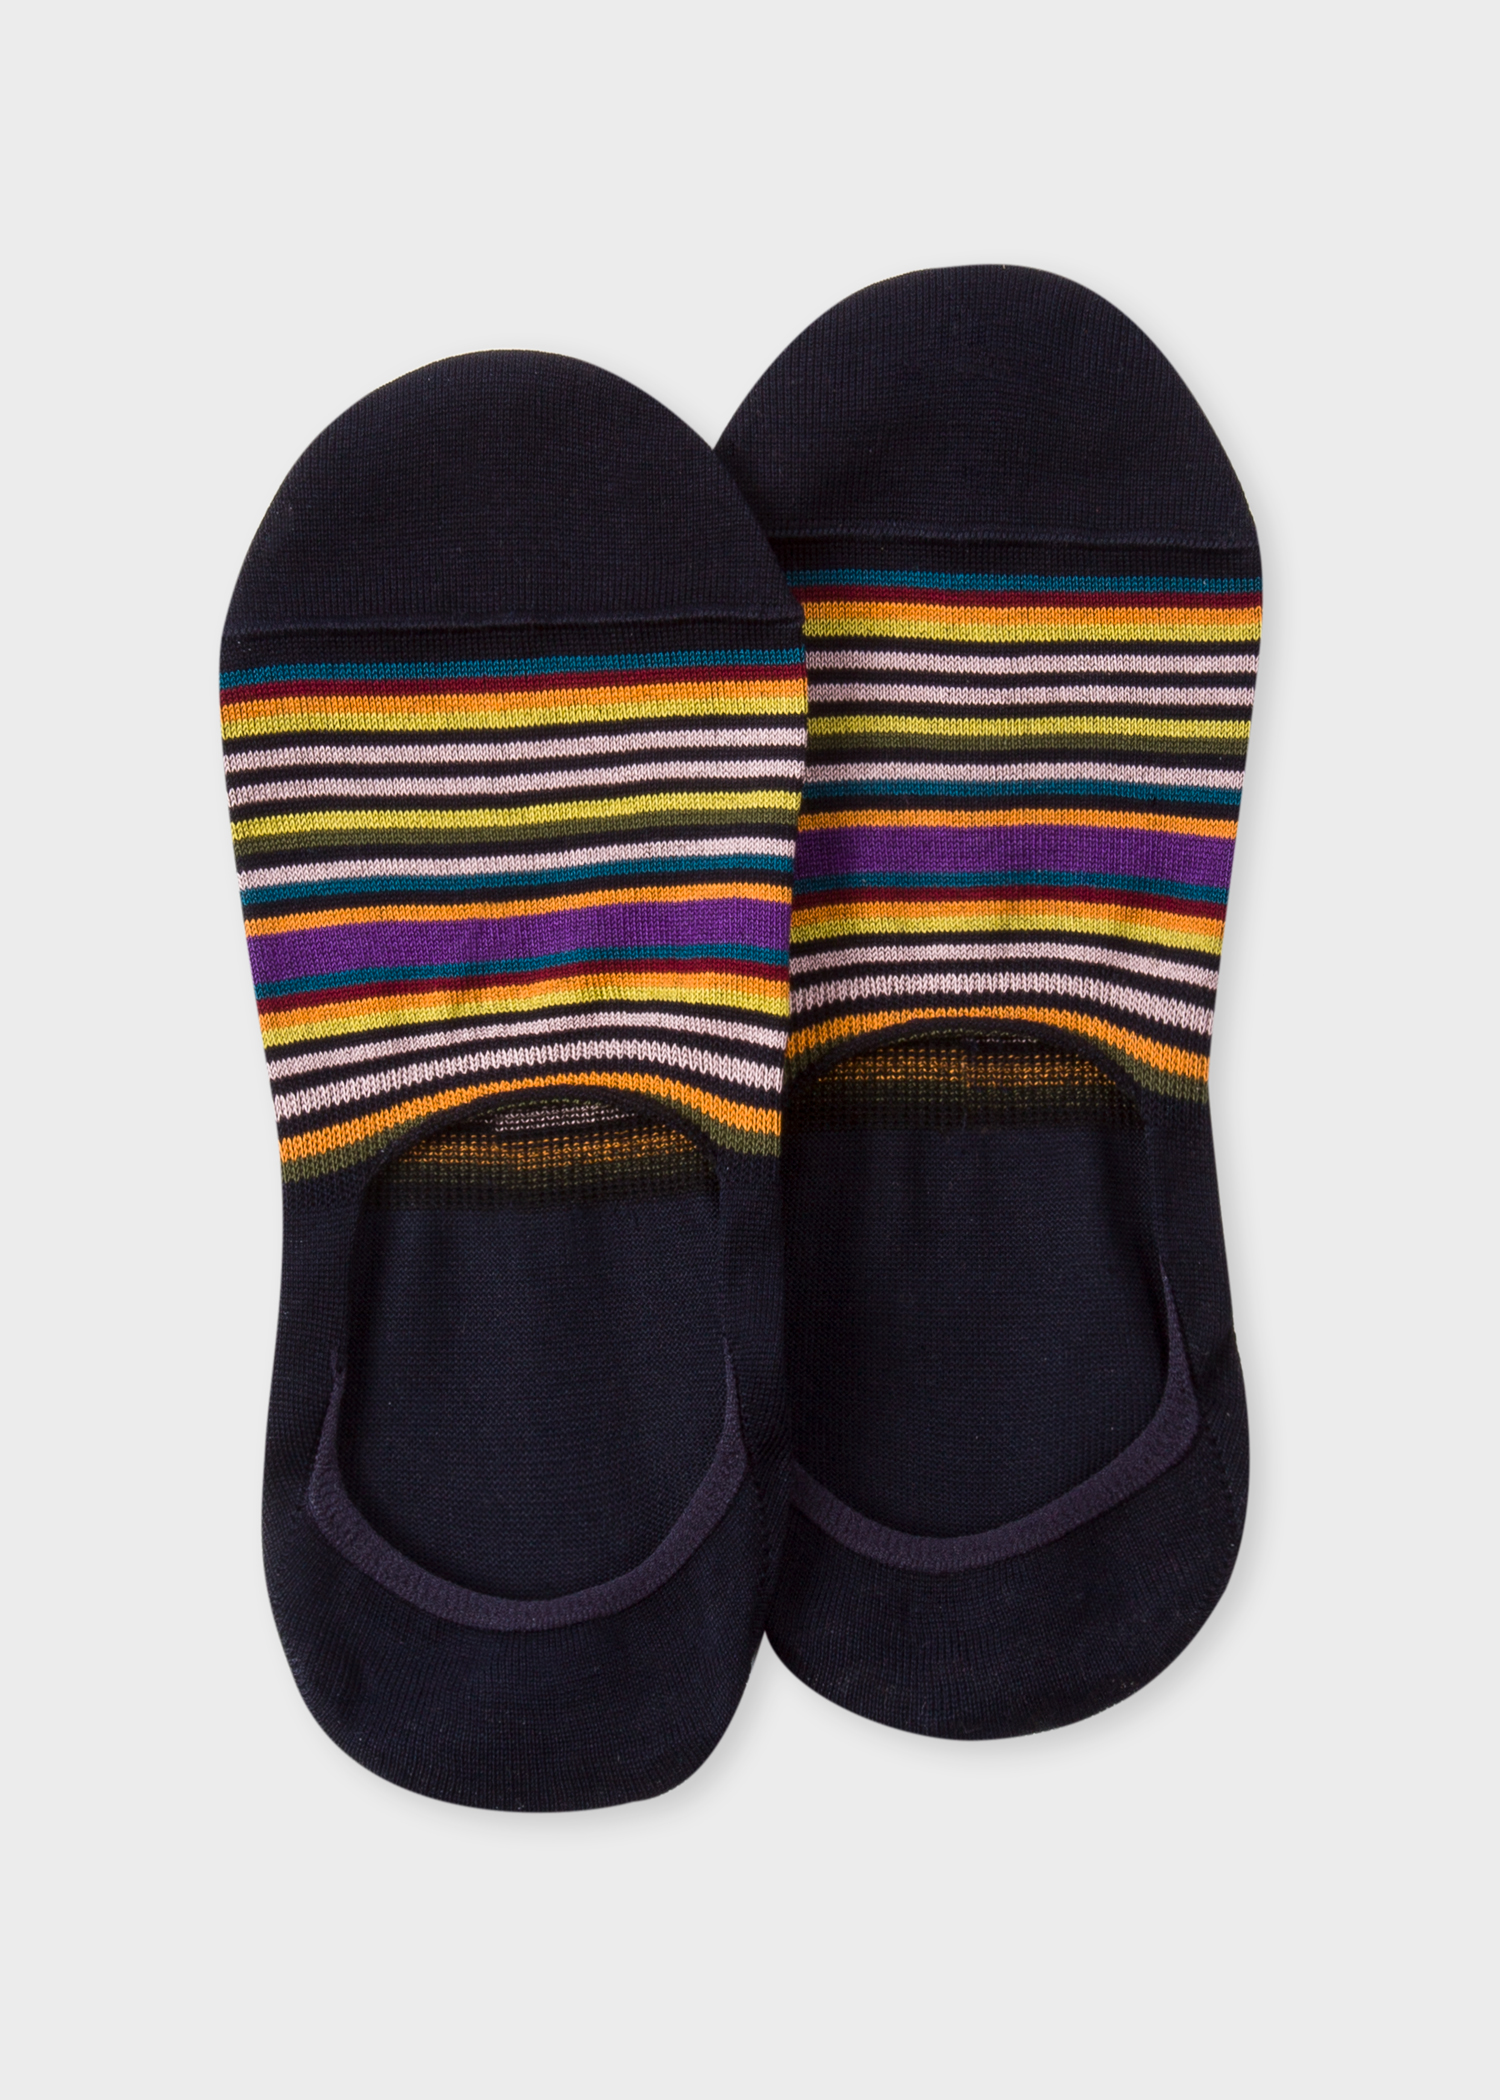 c26f03ebb20 Front view - Women s Dark Navy Multi-Colour Striped Loafer Socks Paul Smith